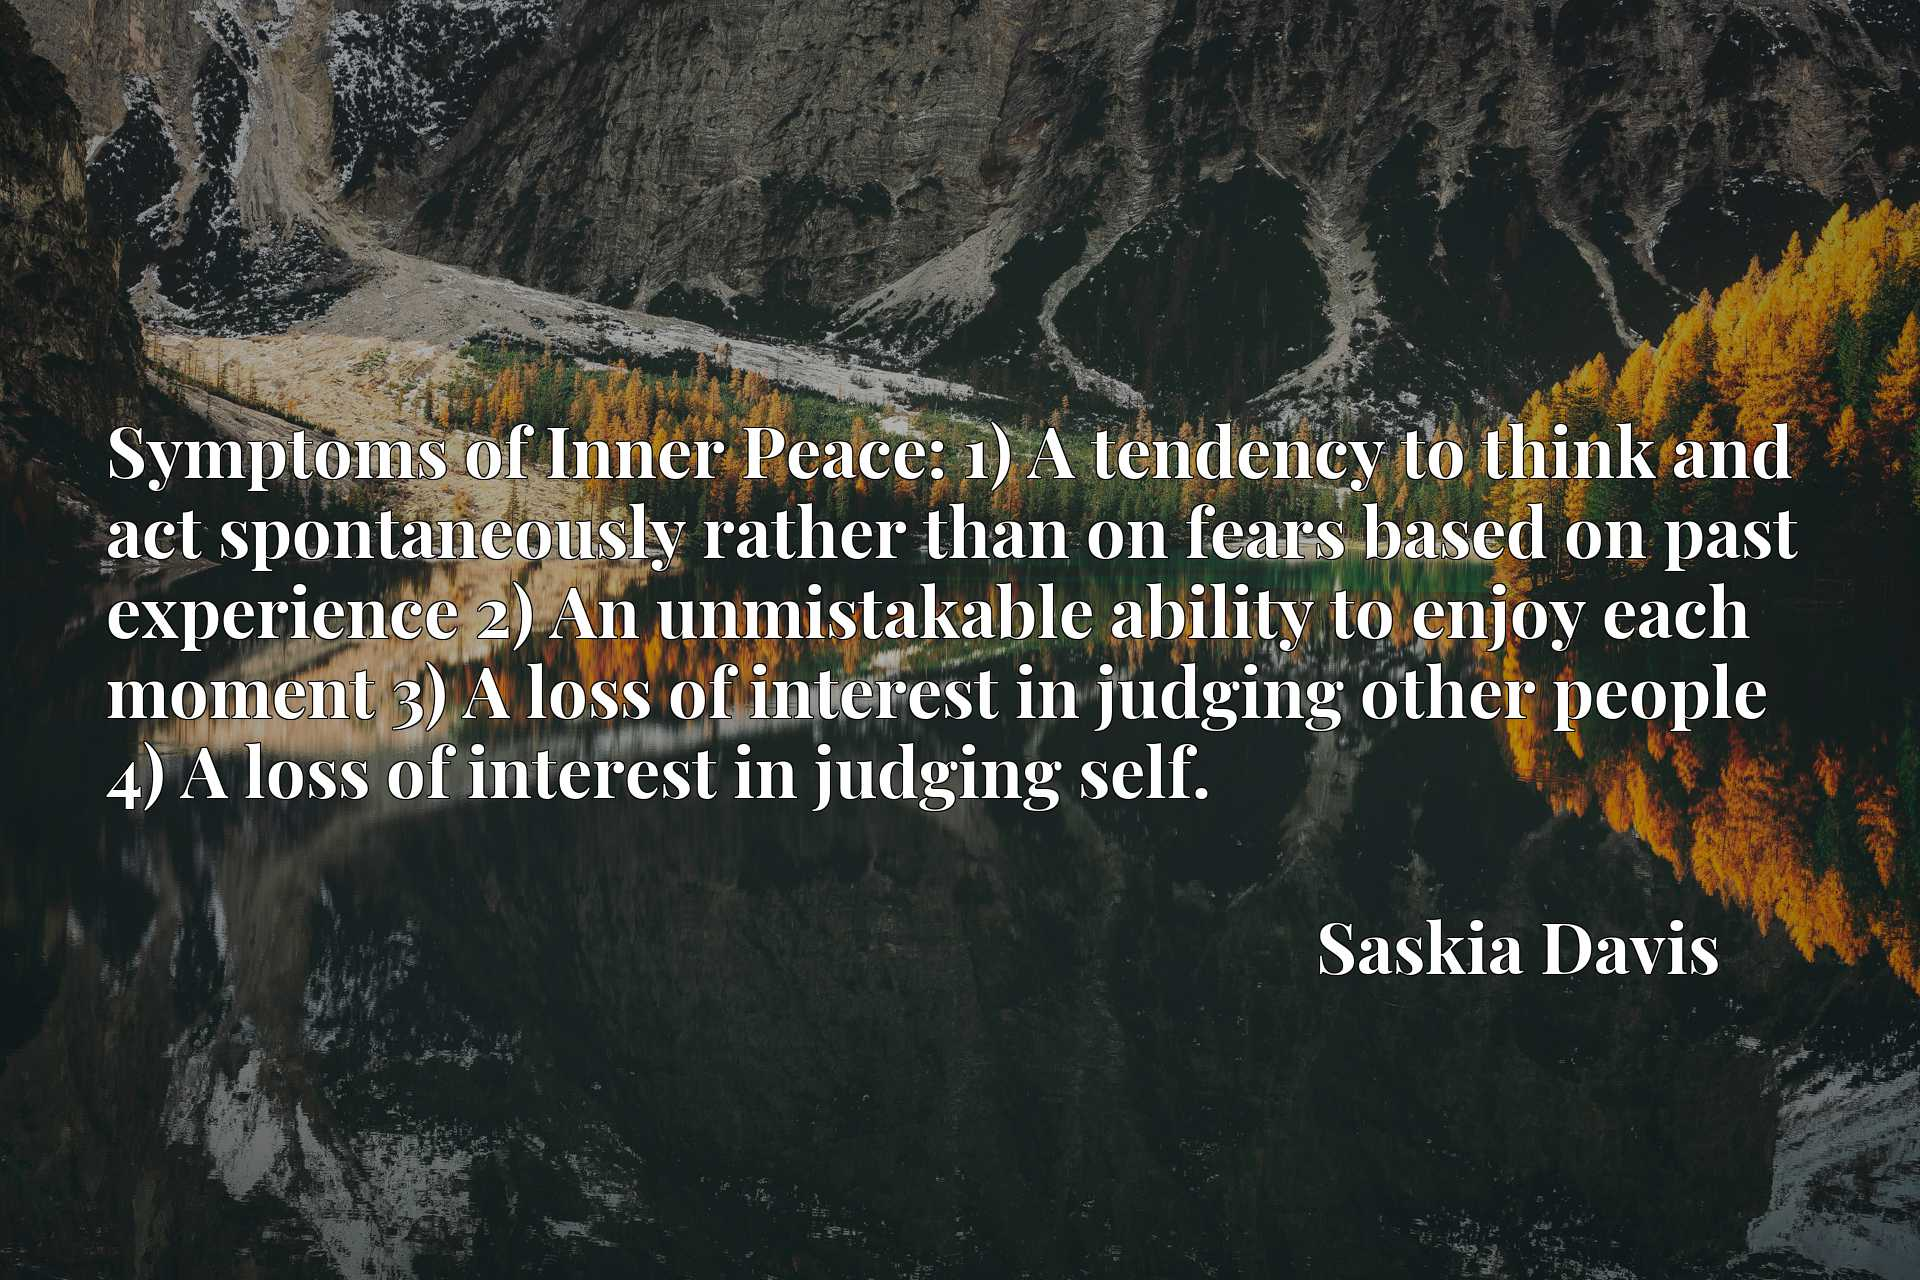 Symptoms of Inner Peace: 1) A tendency to think and act spontaneously rather than on fears based on past experience 2) An unmistakable ability to enjoy each moment 3) A loss of interest in judging other people 4) A loss of interest in judging self.